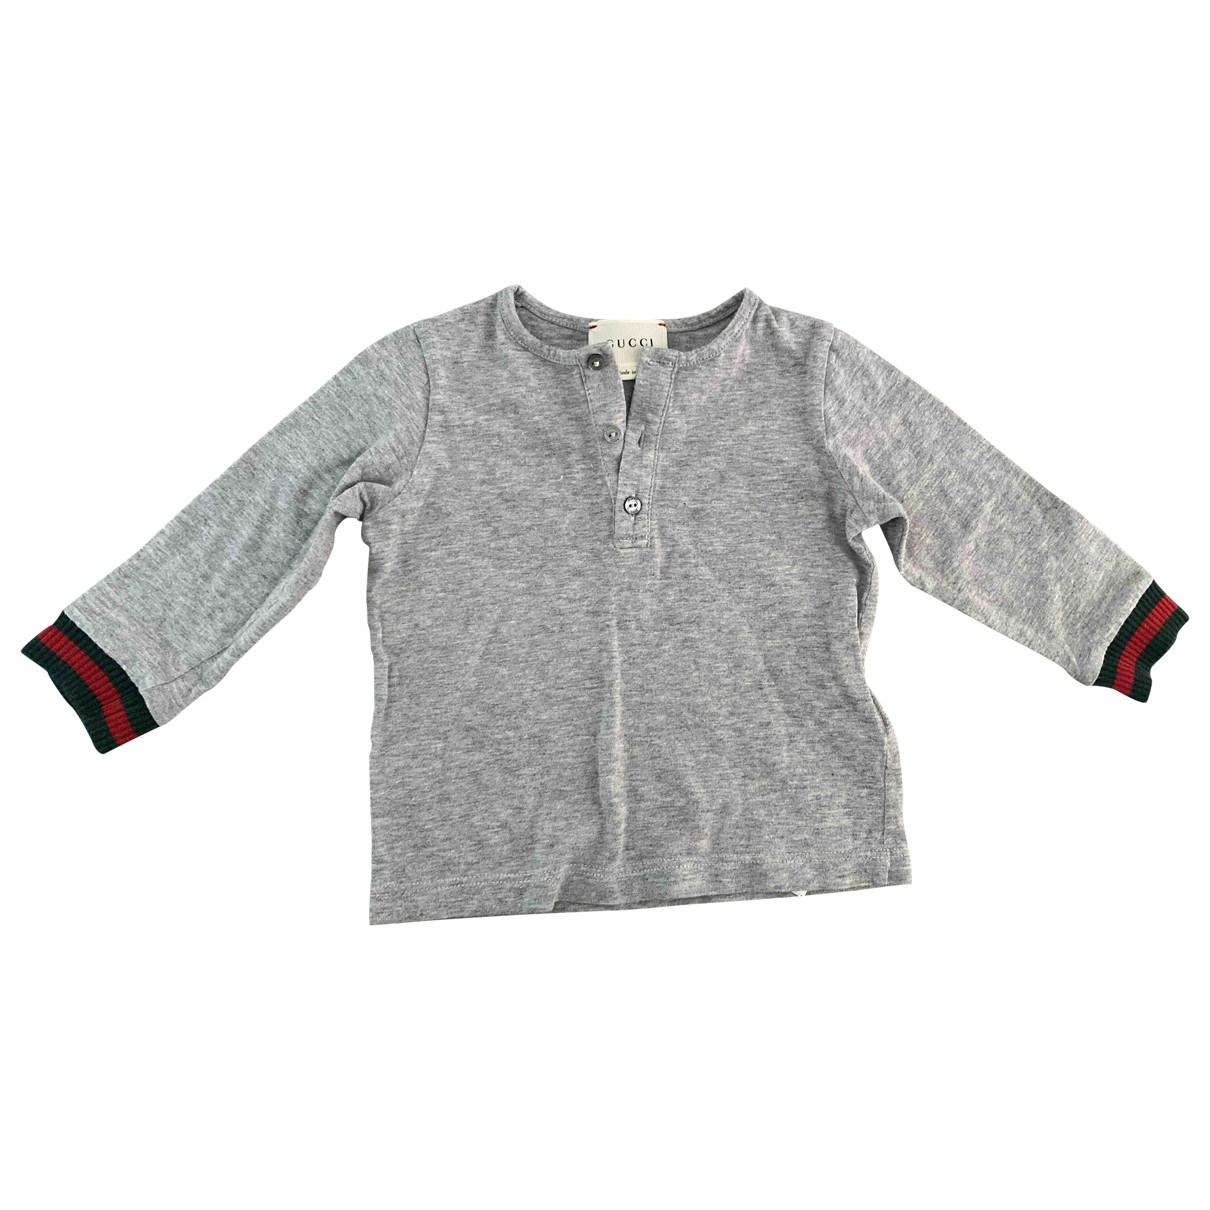 Gucci \N Grey Cotton  top for Kids 9 months - until 28 inches UK